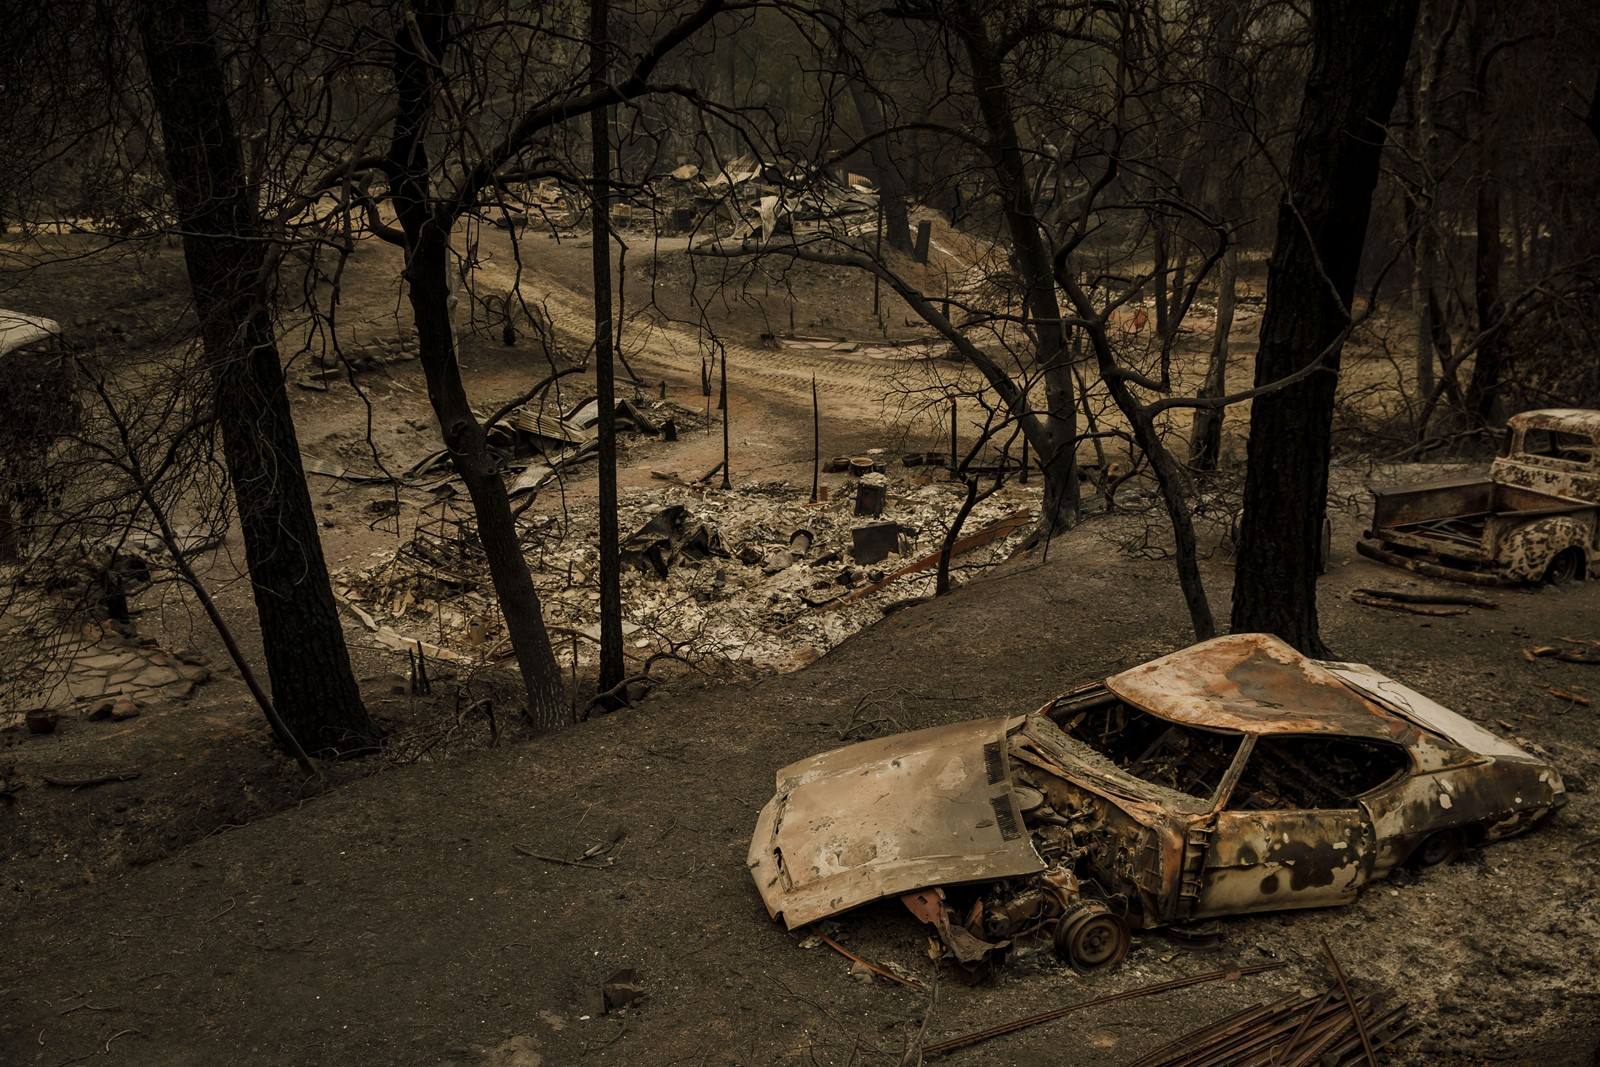 "The wildfire swept through and destroyed property and structures on Saturday in Shasta. ""We are doing everything in our power to bring an end to this chaos,"" Shasta County Fire Chief Mike Hebrard said. — Photograph: Marcus Yam/Los Angeles Times."